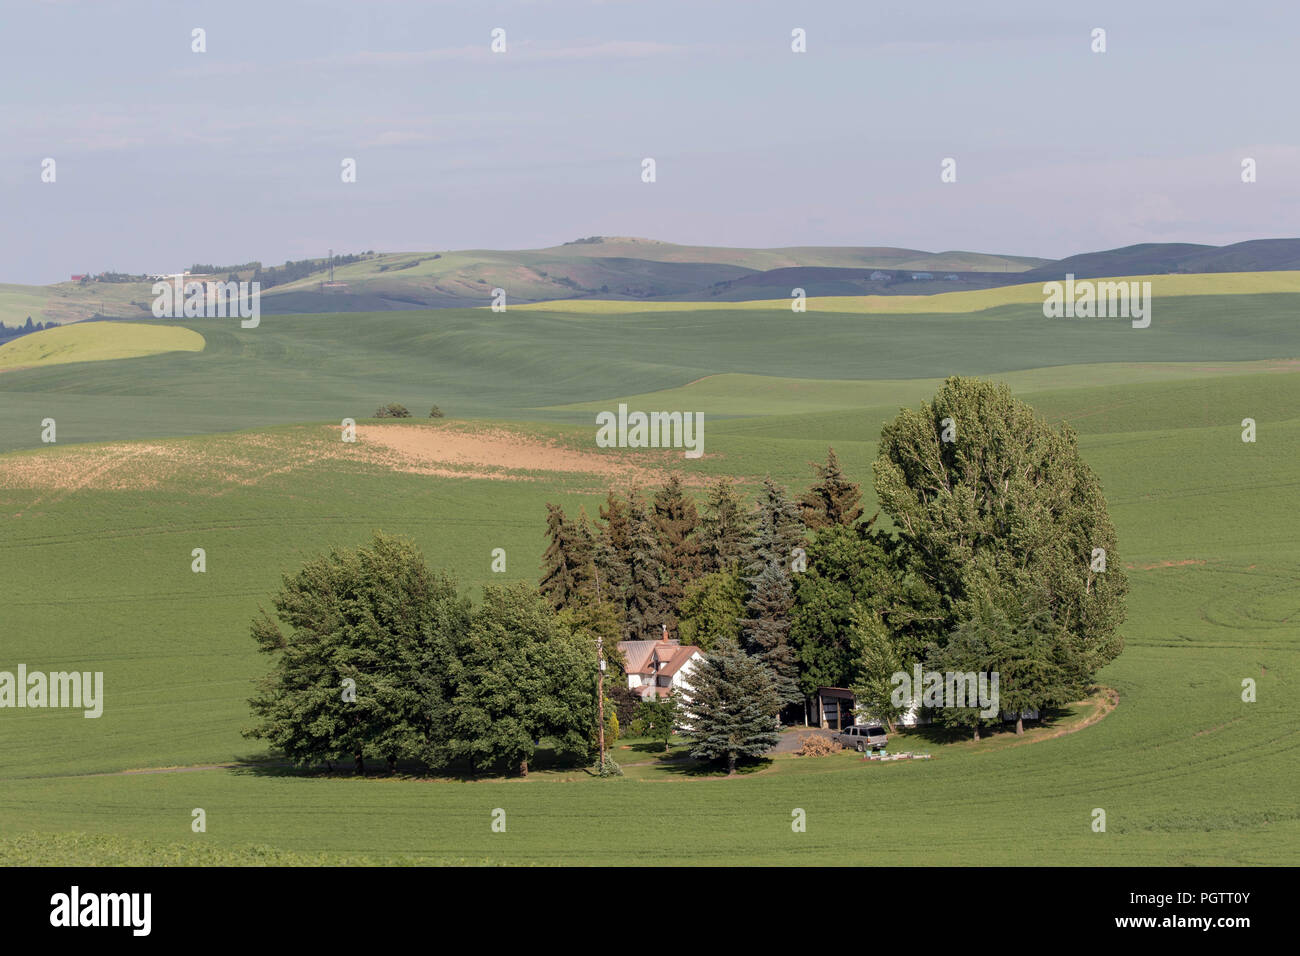 Farm land with beans and crops in the palouse region of